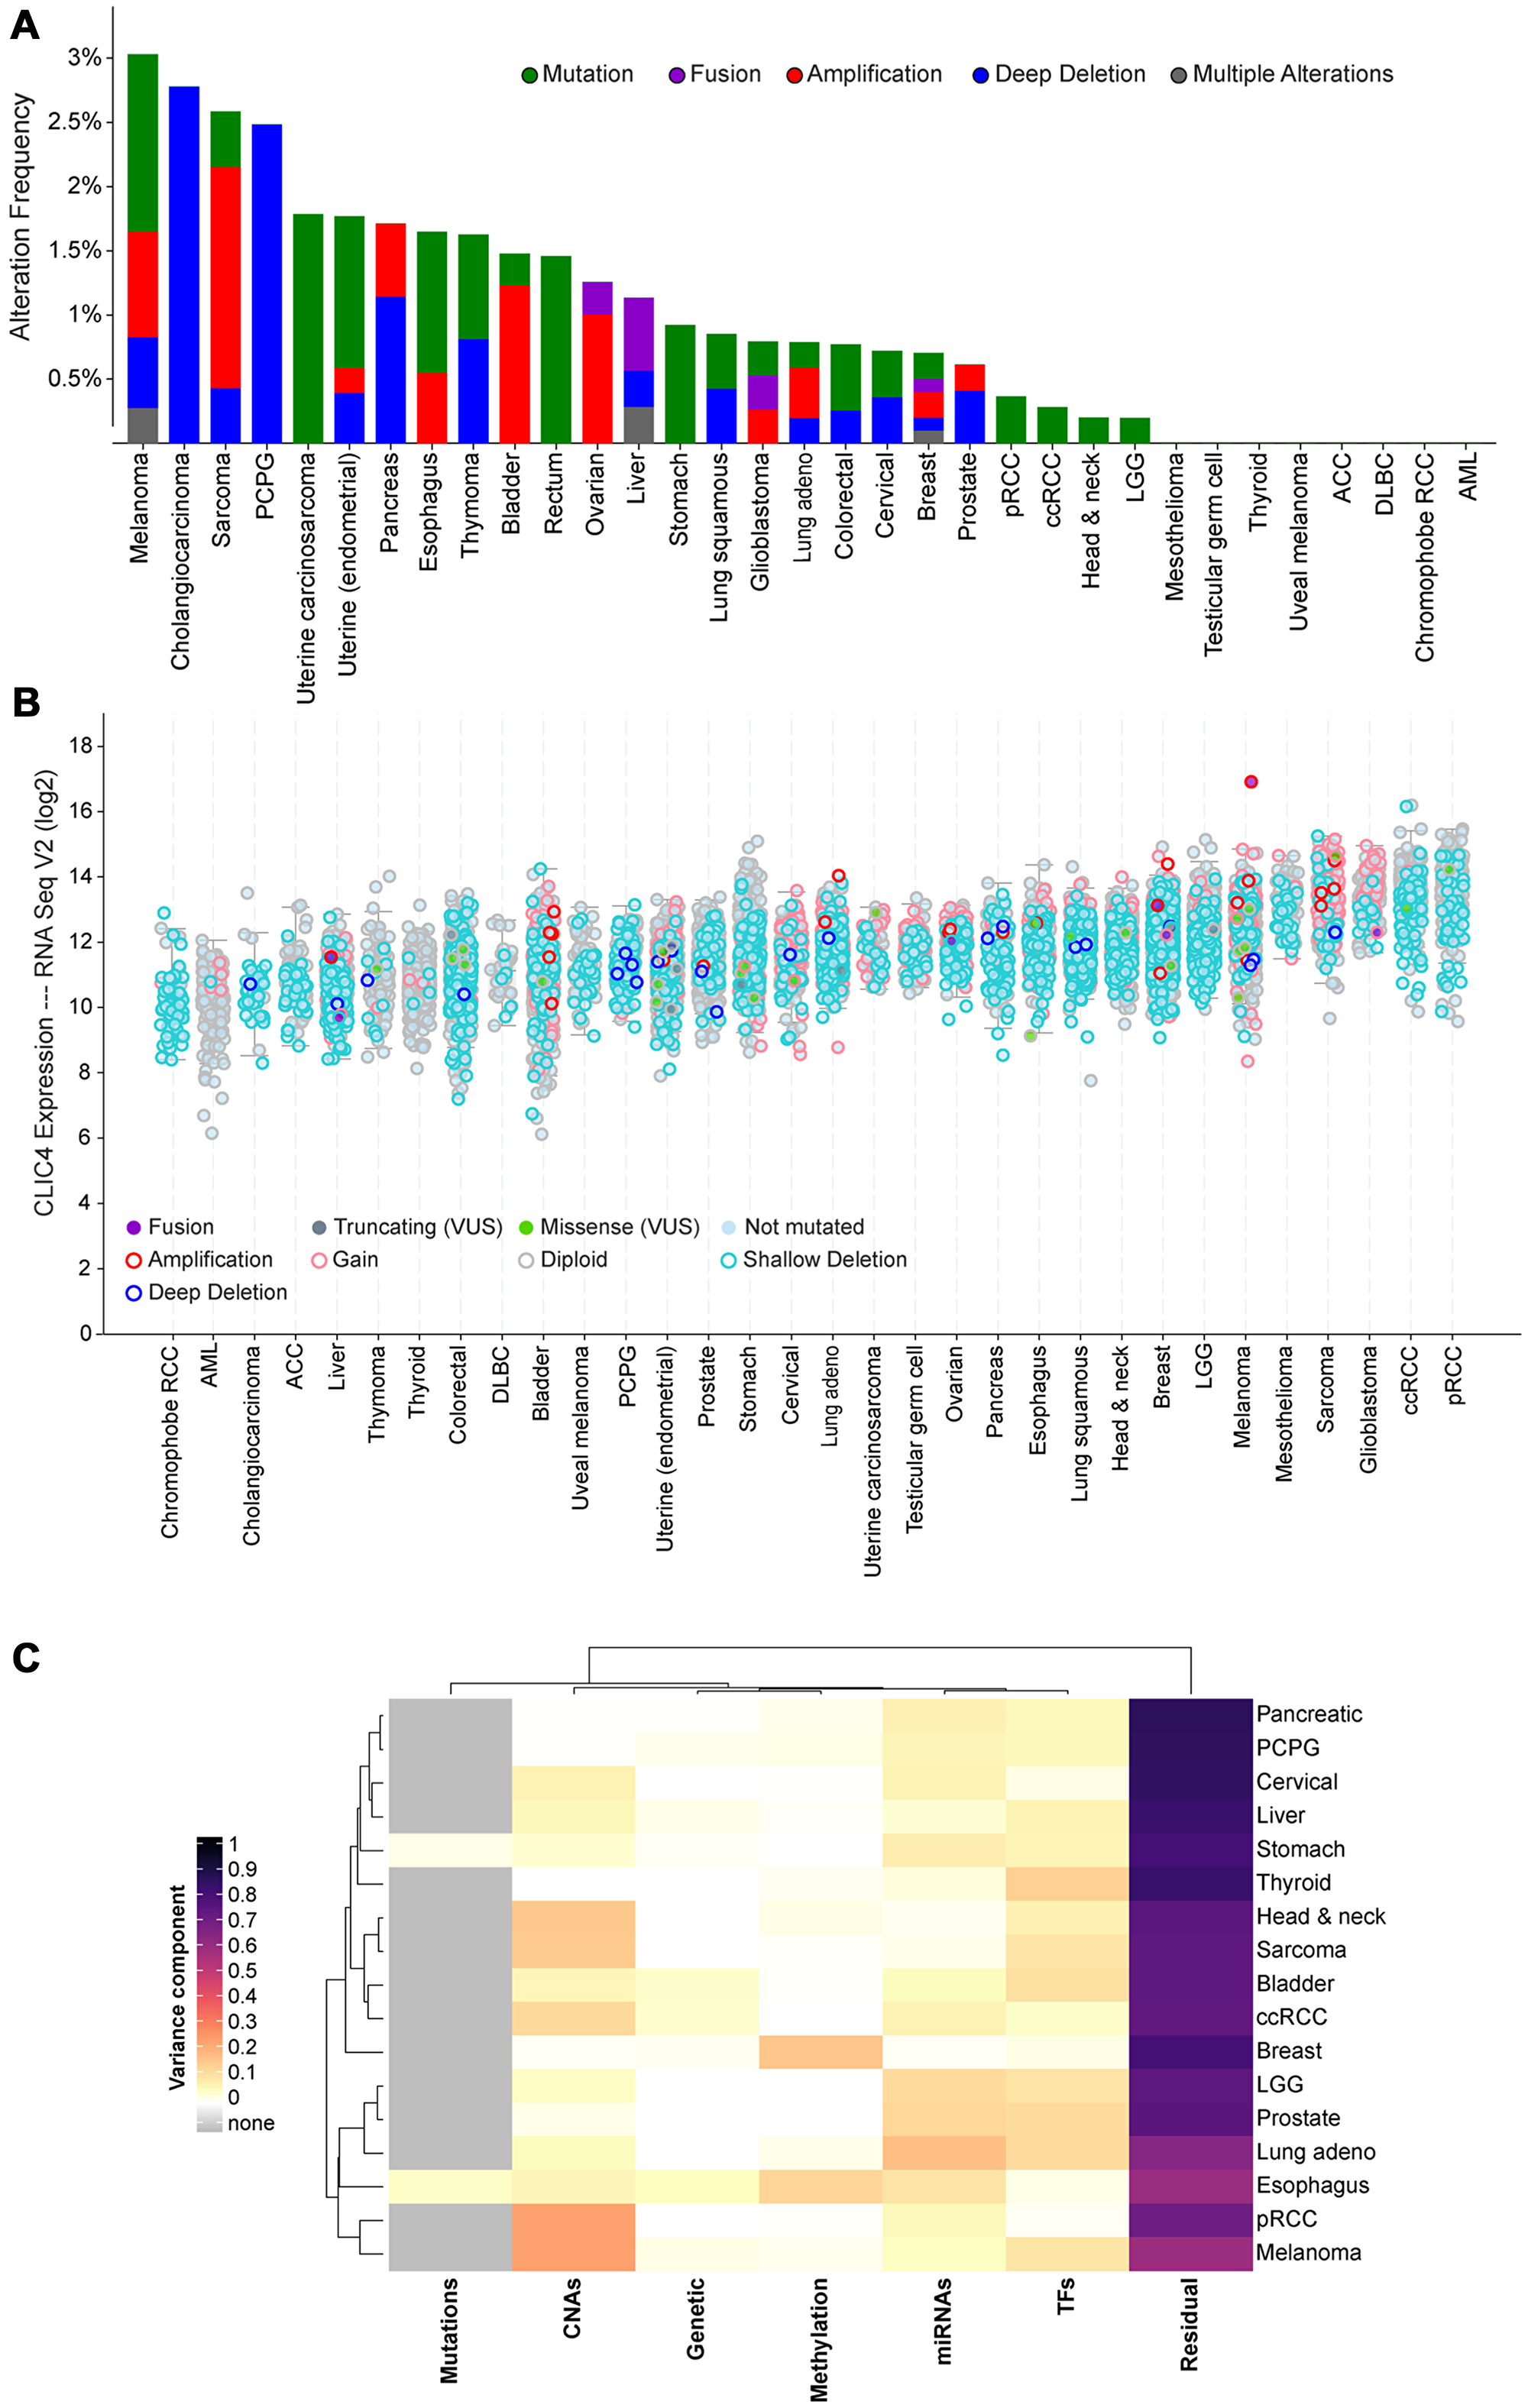 Screening for putative drivers of CLIC4 expression variation in human cancers.